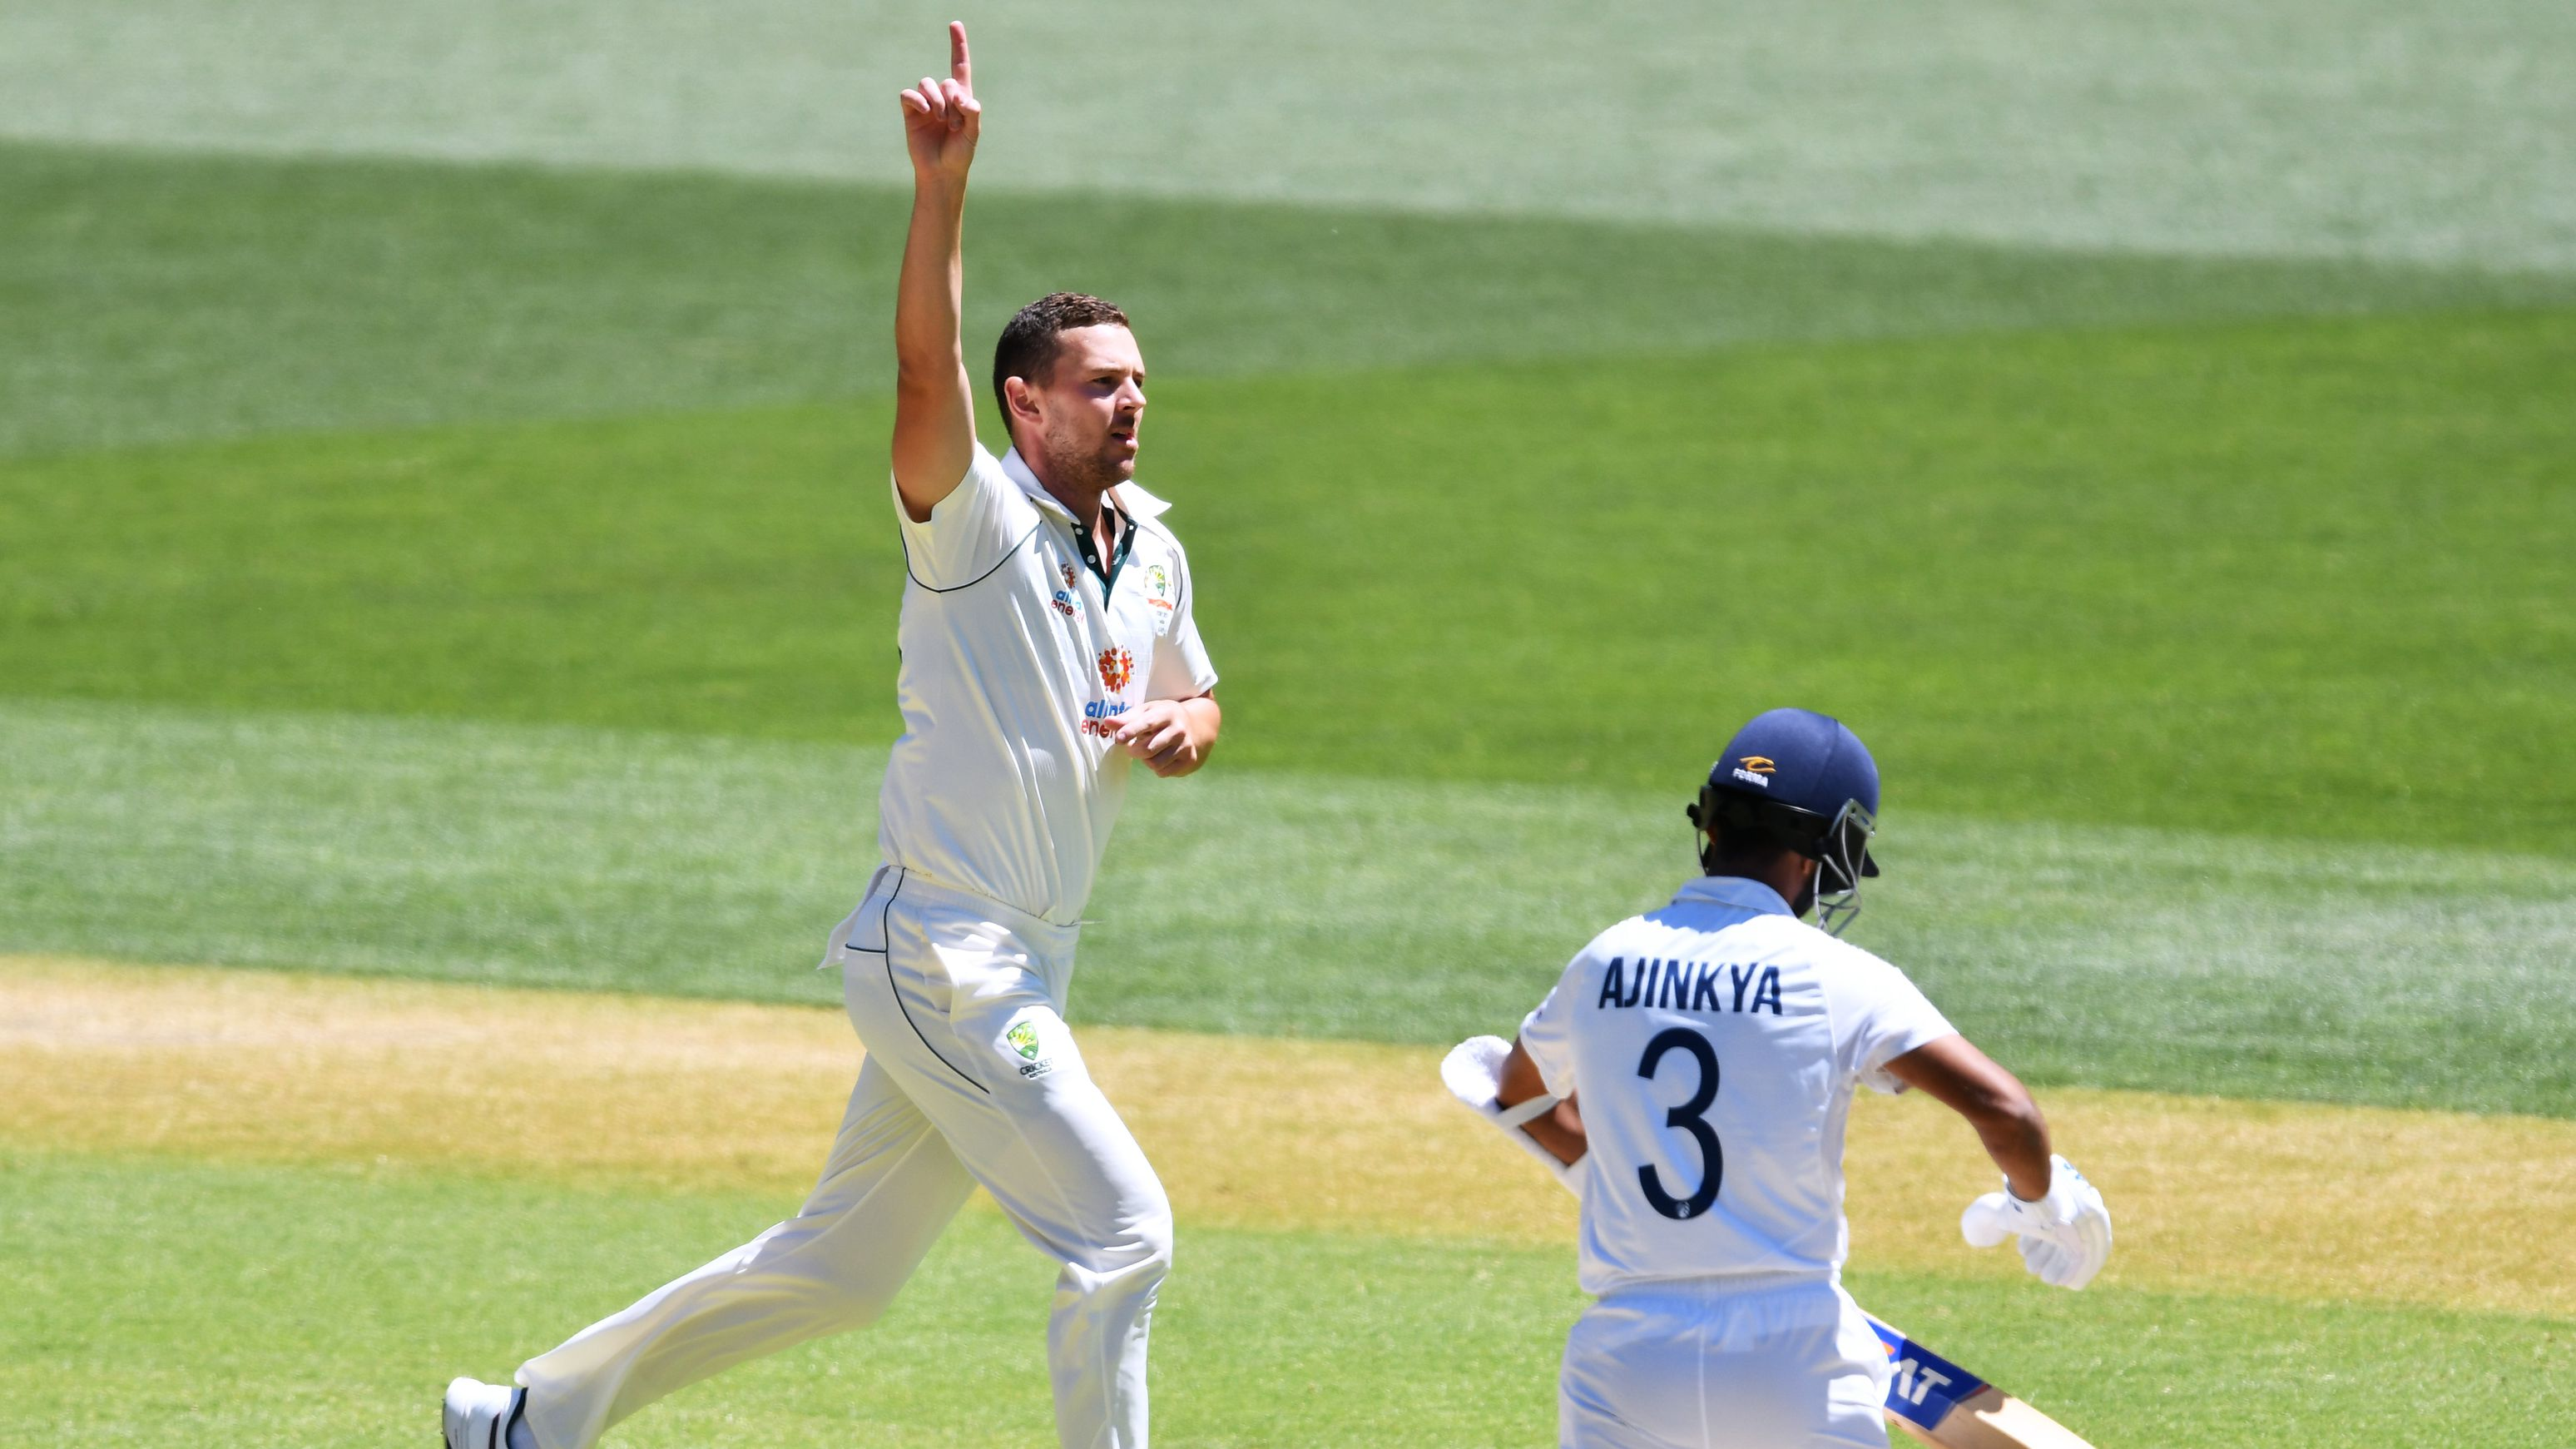 Josh Hazelwood of Australia celebrates the wicket of Ajinkya Rahane of India.